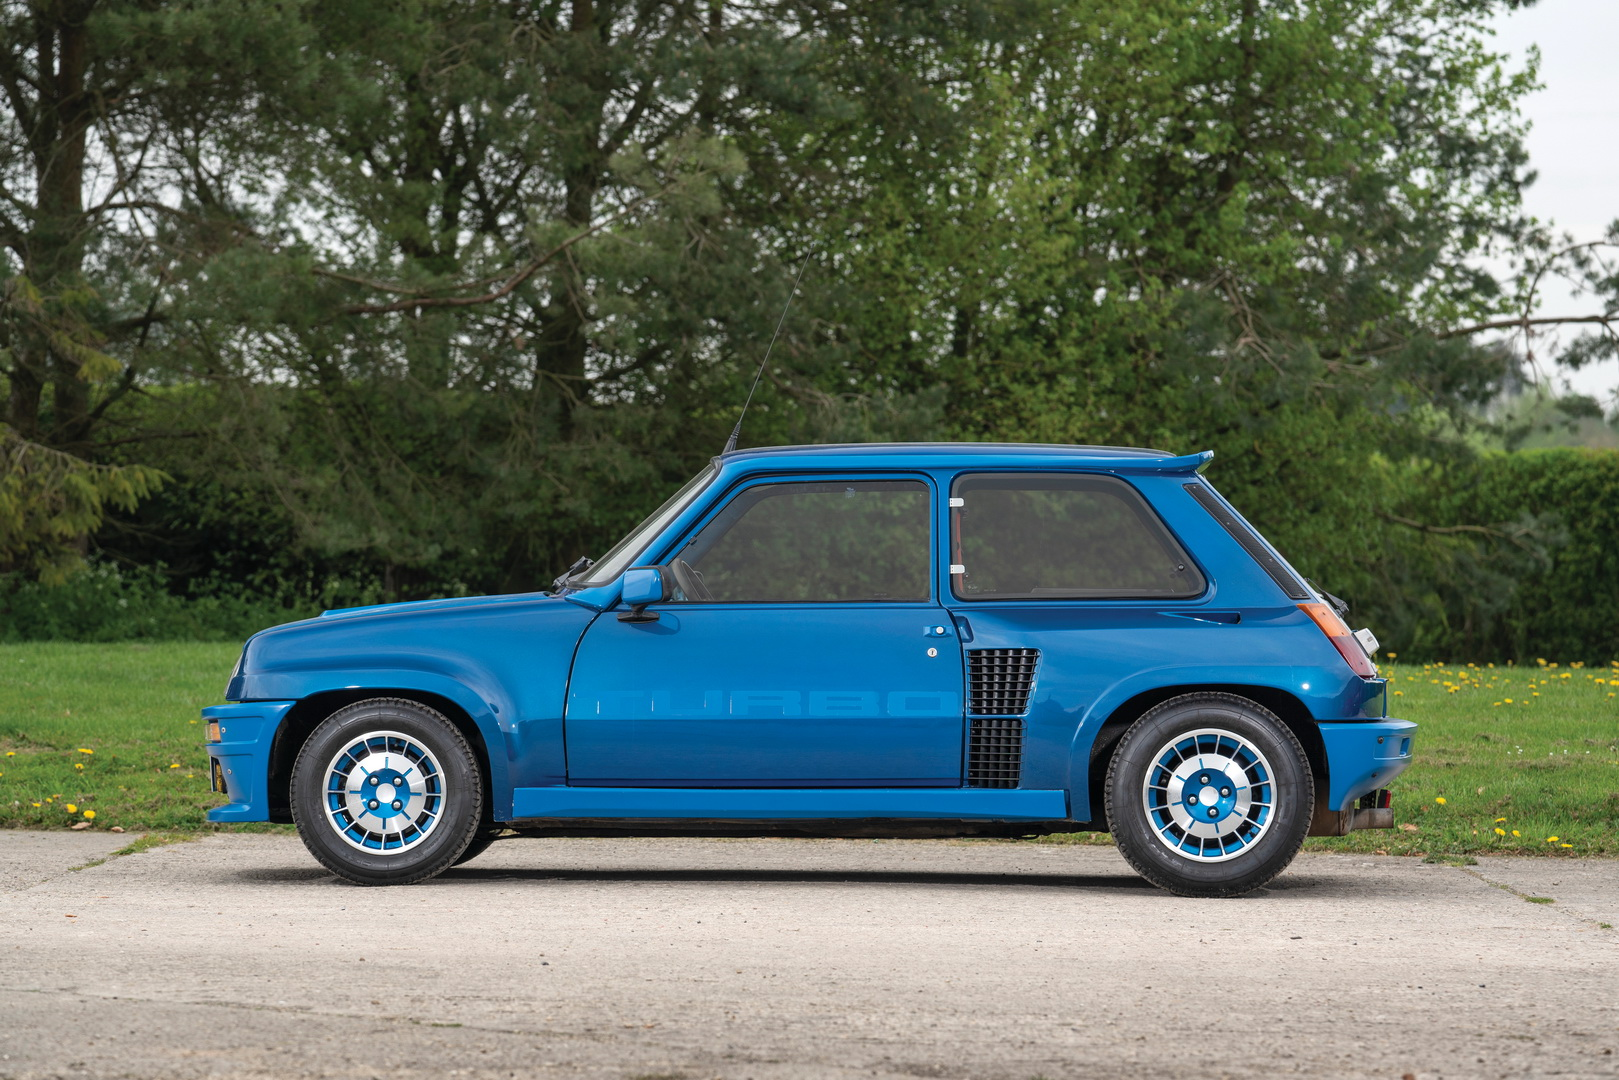 ราคา-Renault-5-Turbo-1980-9